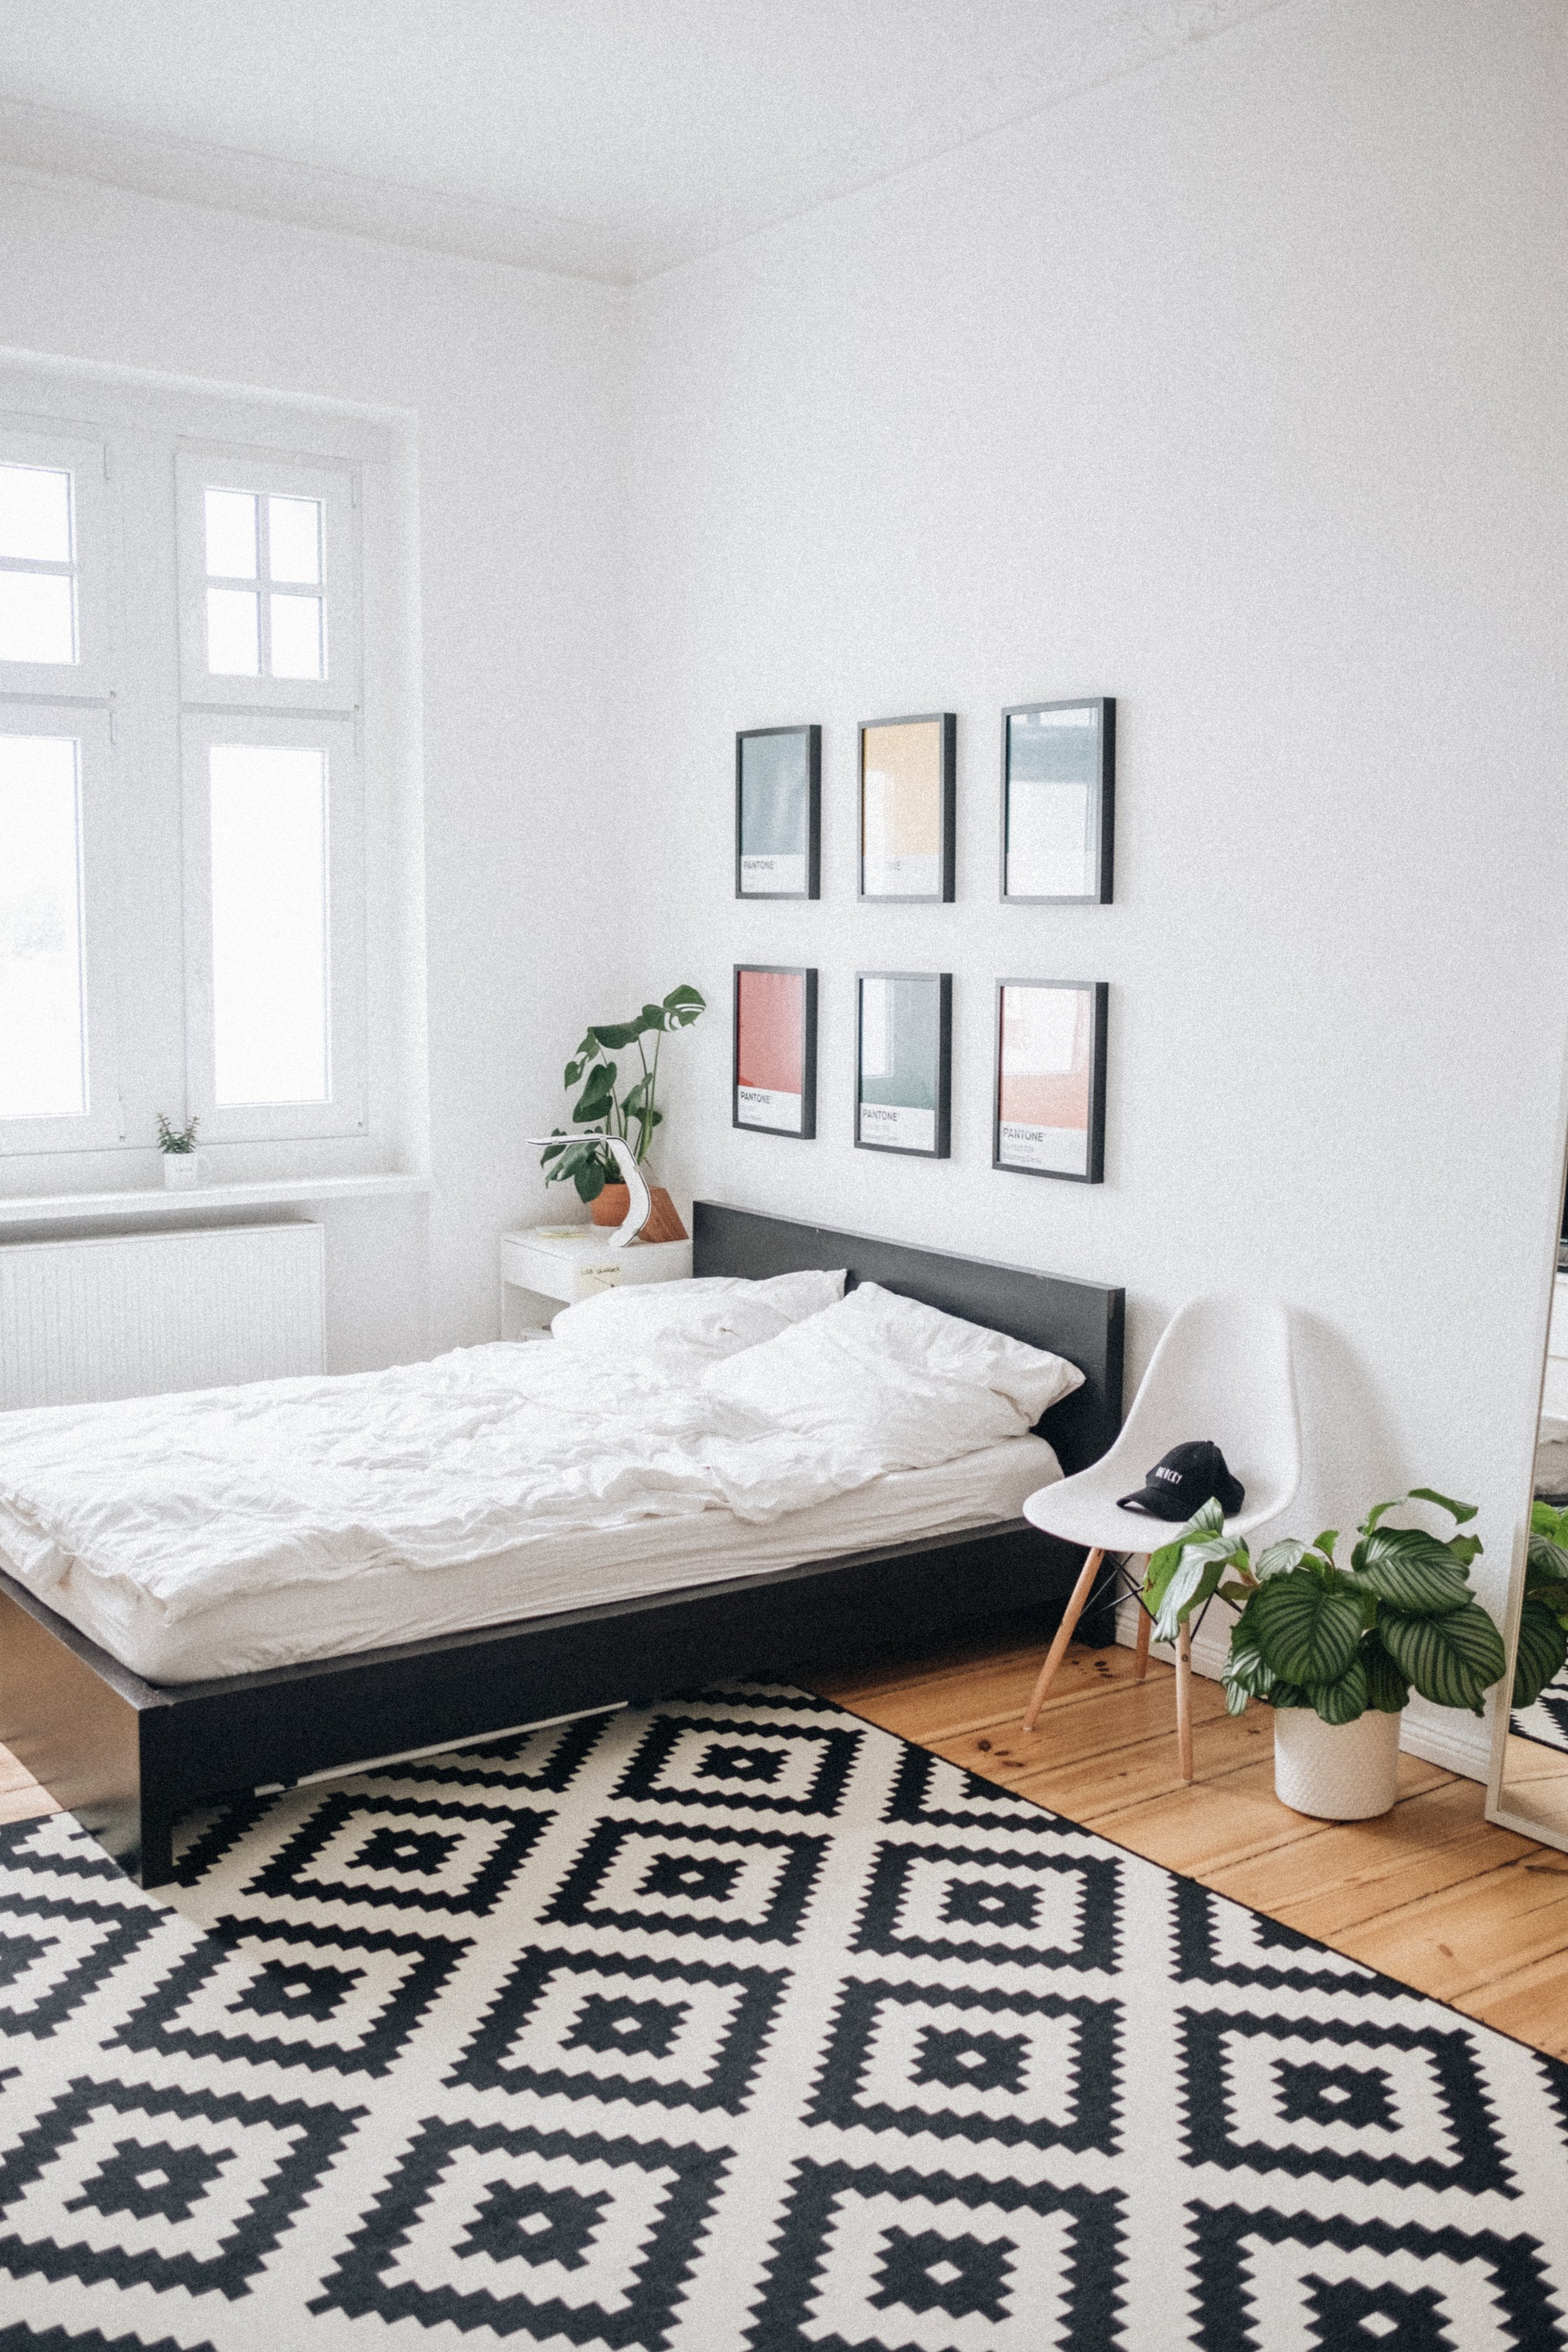 Bedroom with black and white carpet. Photo by Sonnie Hiles on Unsplash